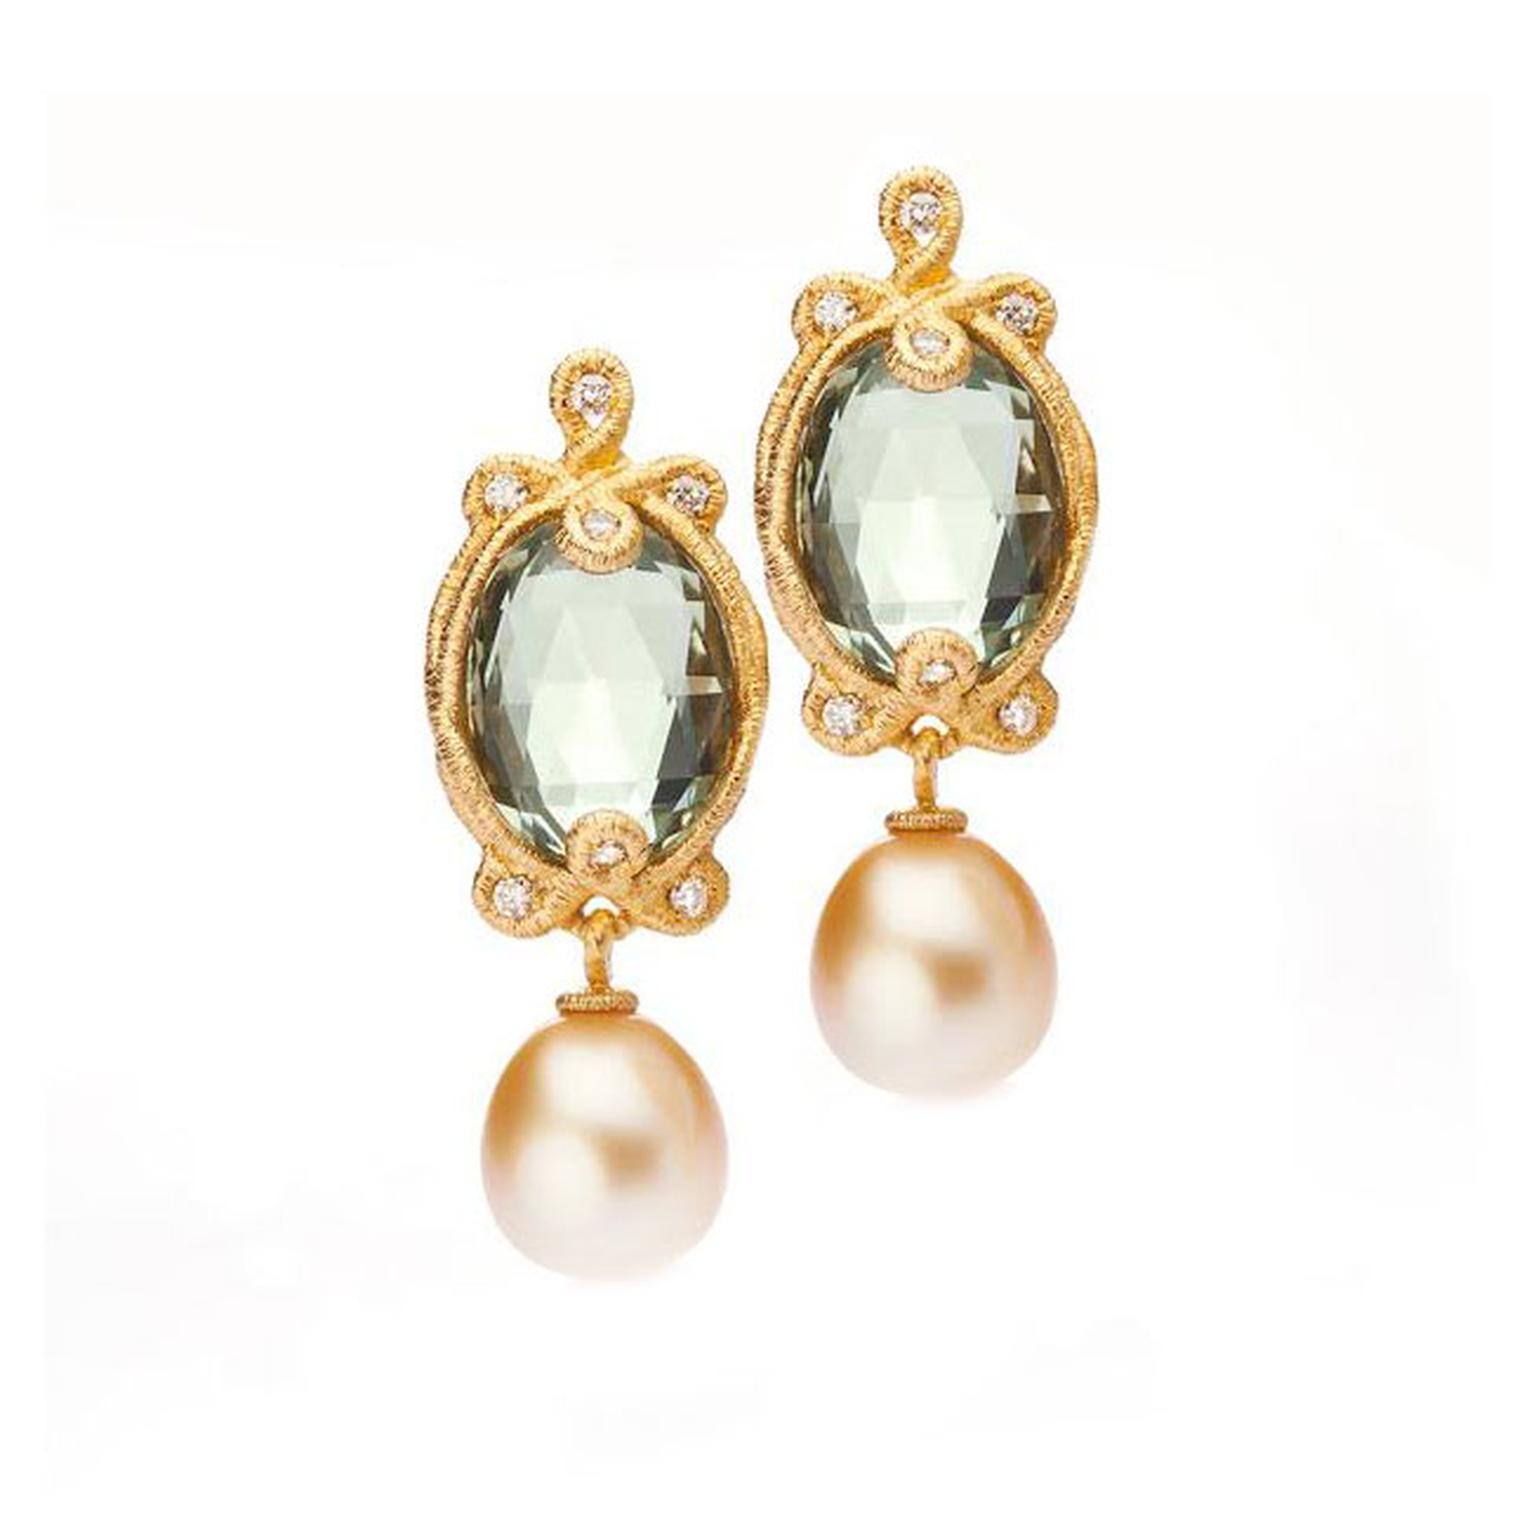 Brigitte Adolph pearl earrings